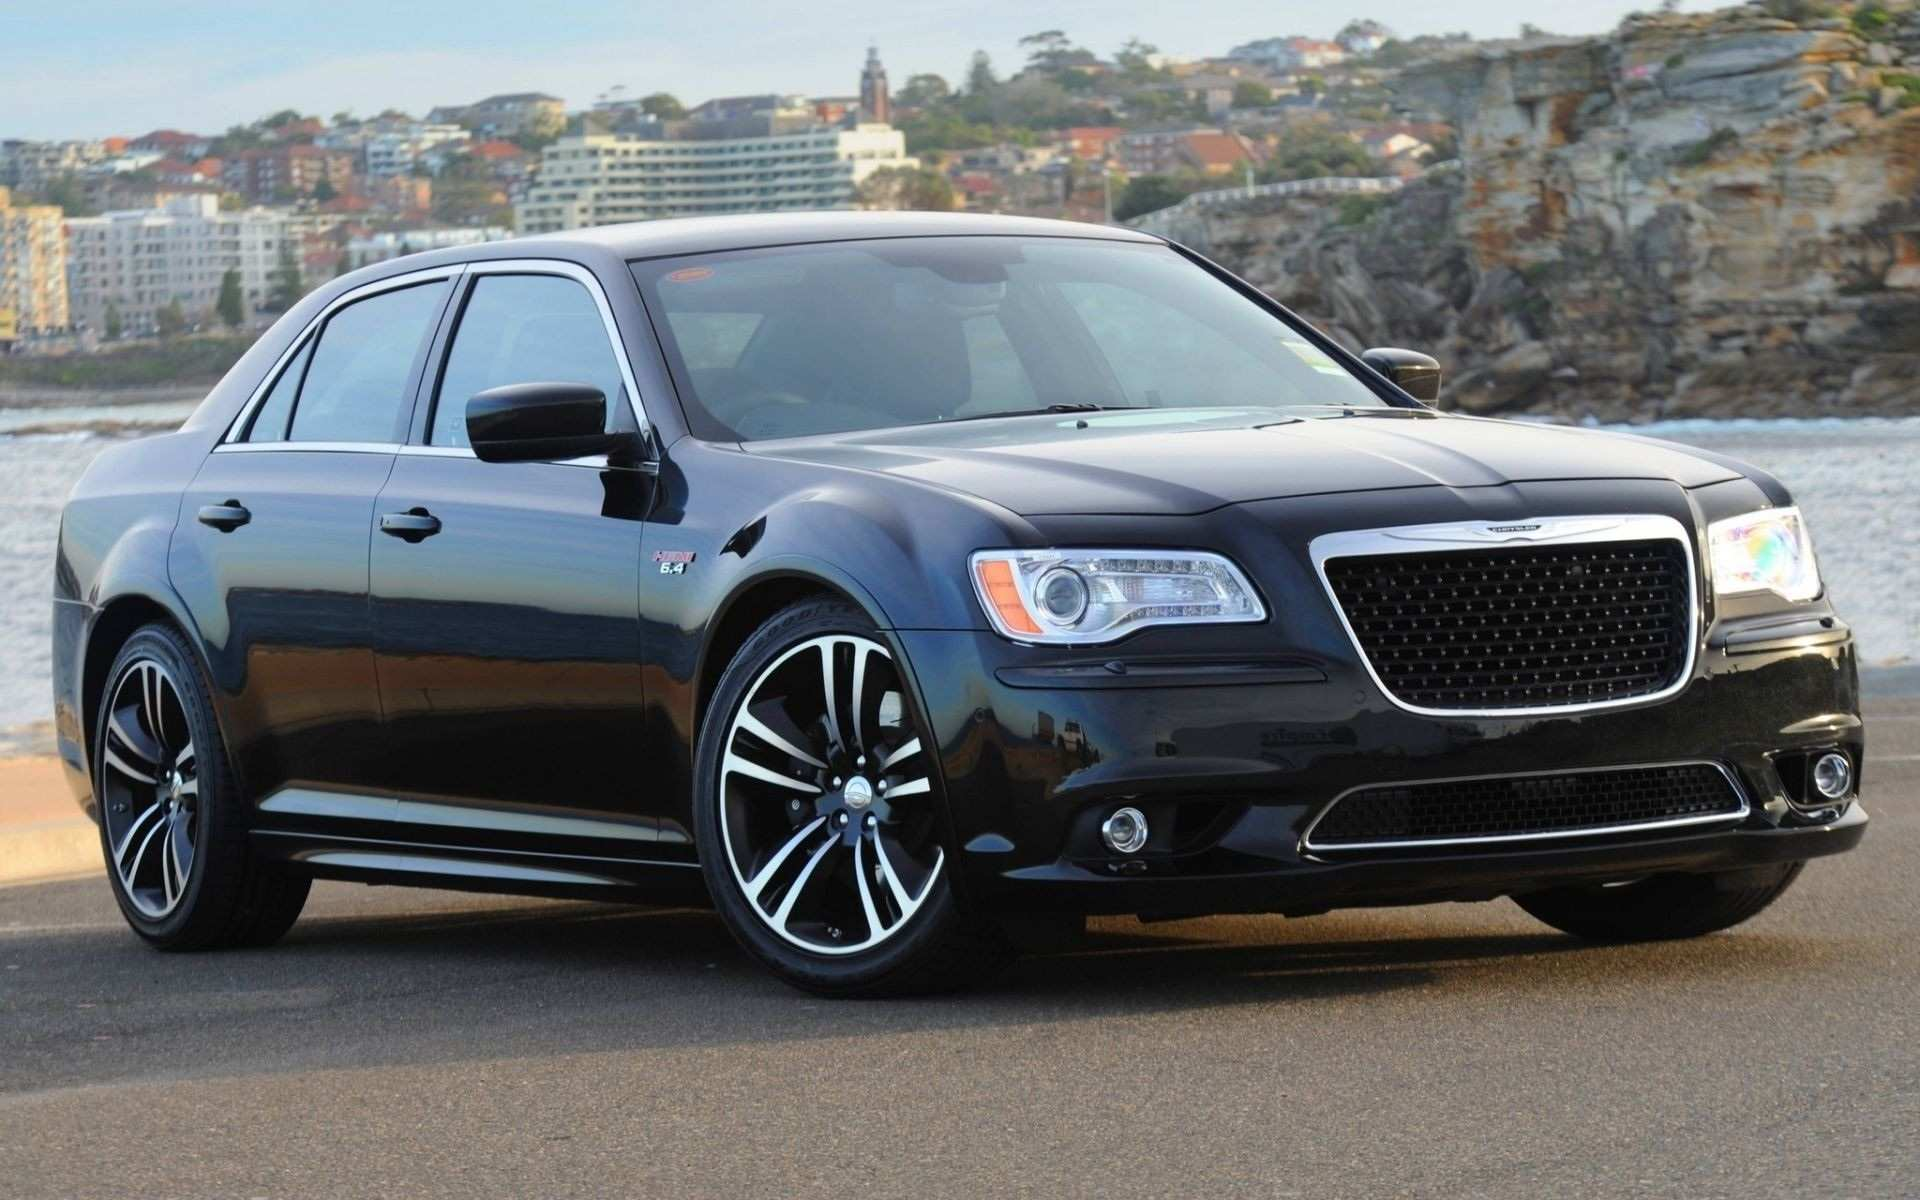 77 A 2020 Chrysler 300 Srt8 Price And Release Date